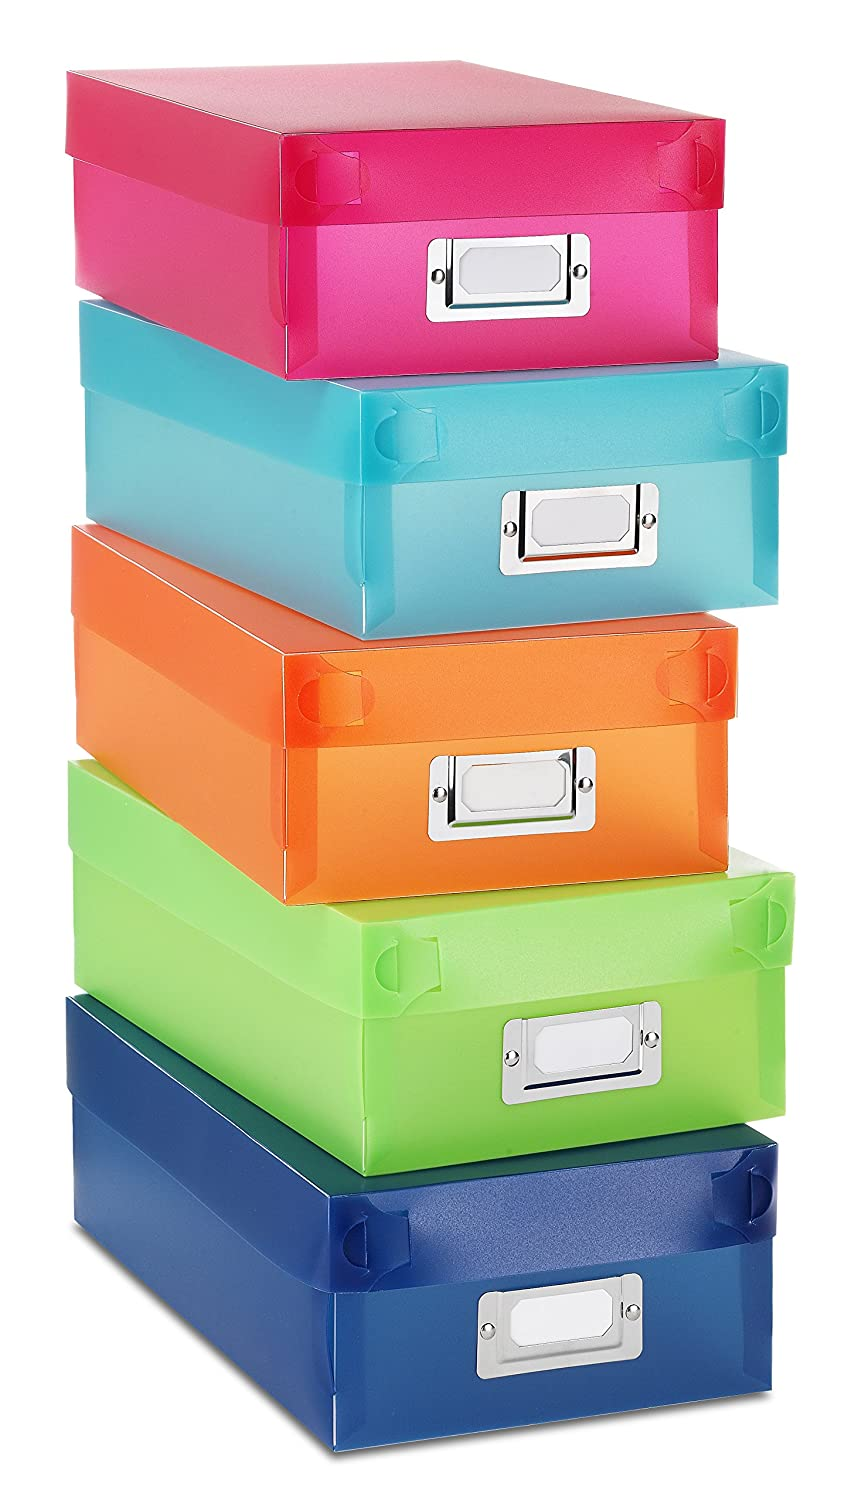 Whitmor Plastic Magazine Organizers Set of 5 Multicolor 6754-372-5